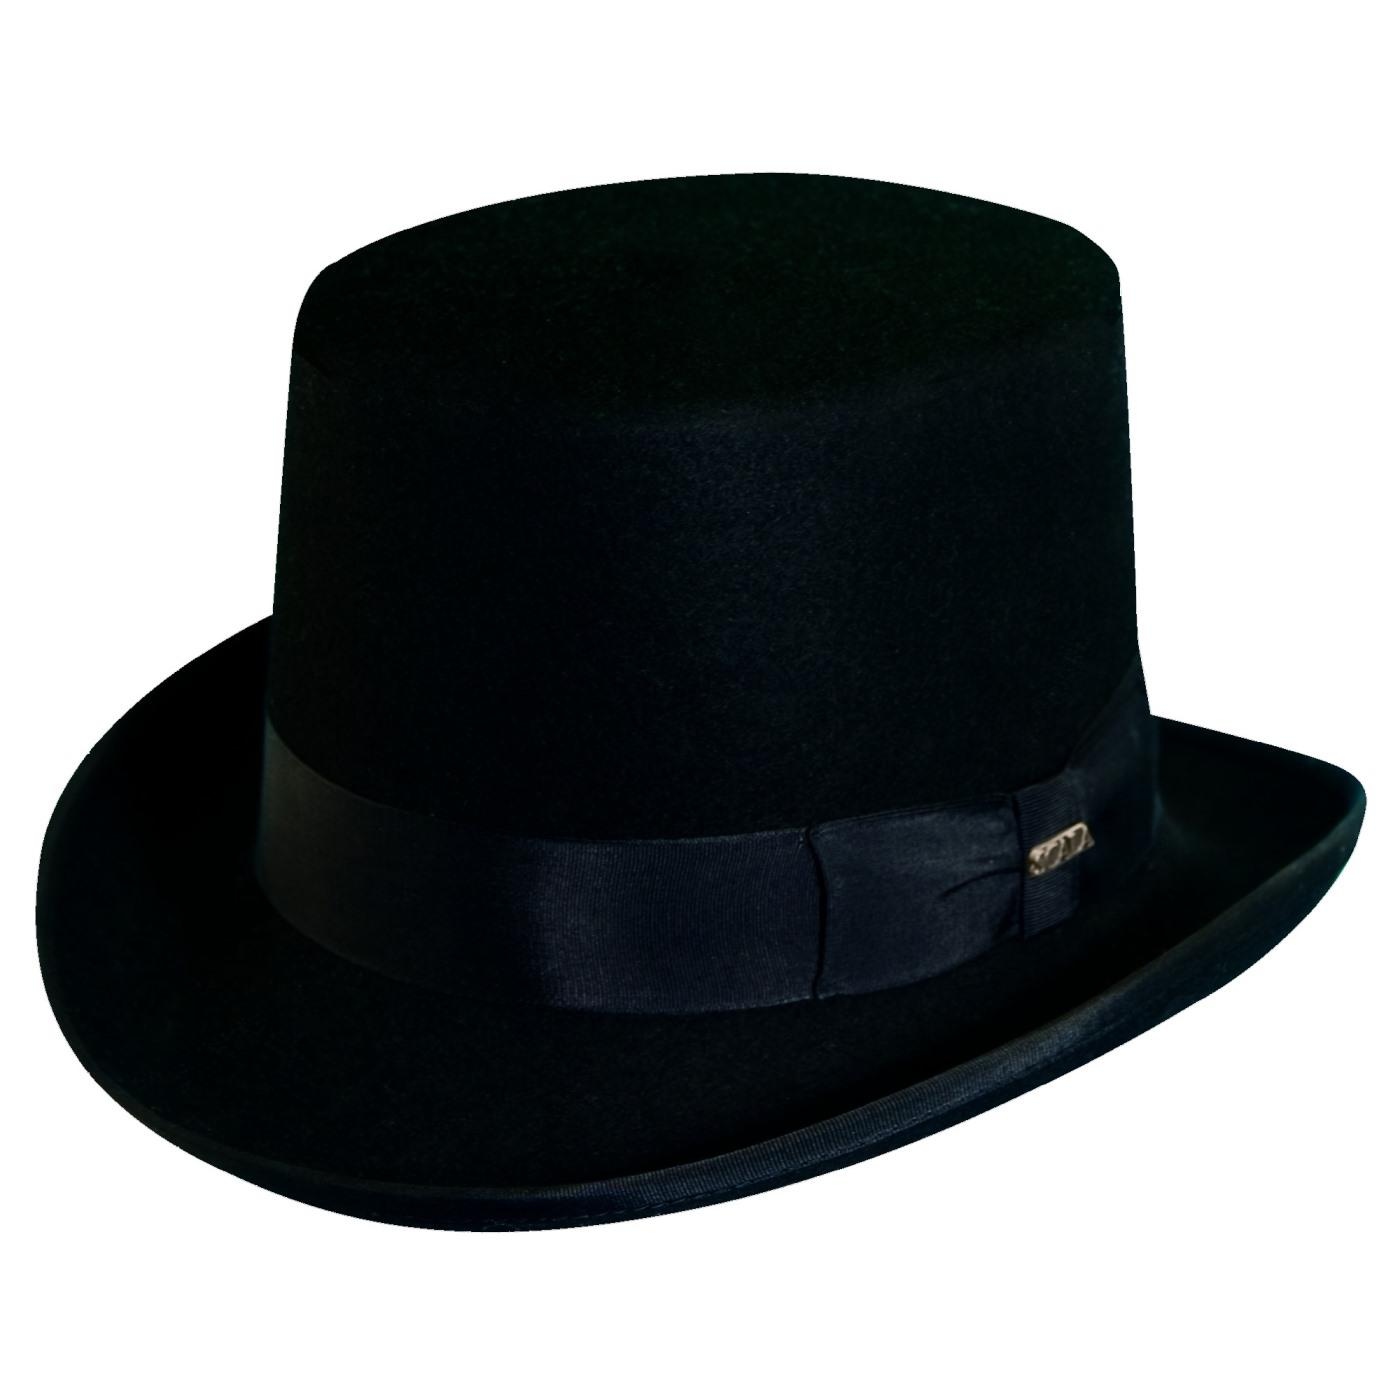 Dorfman Pacific Men s Wool Felt Traditional Top Hat 8a6b1044904